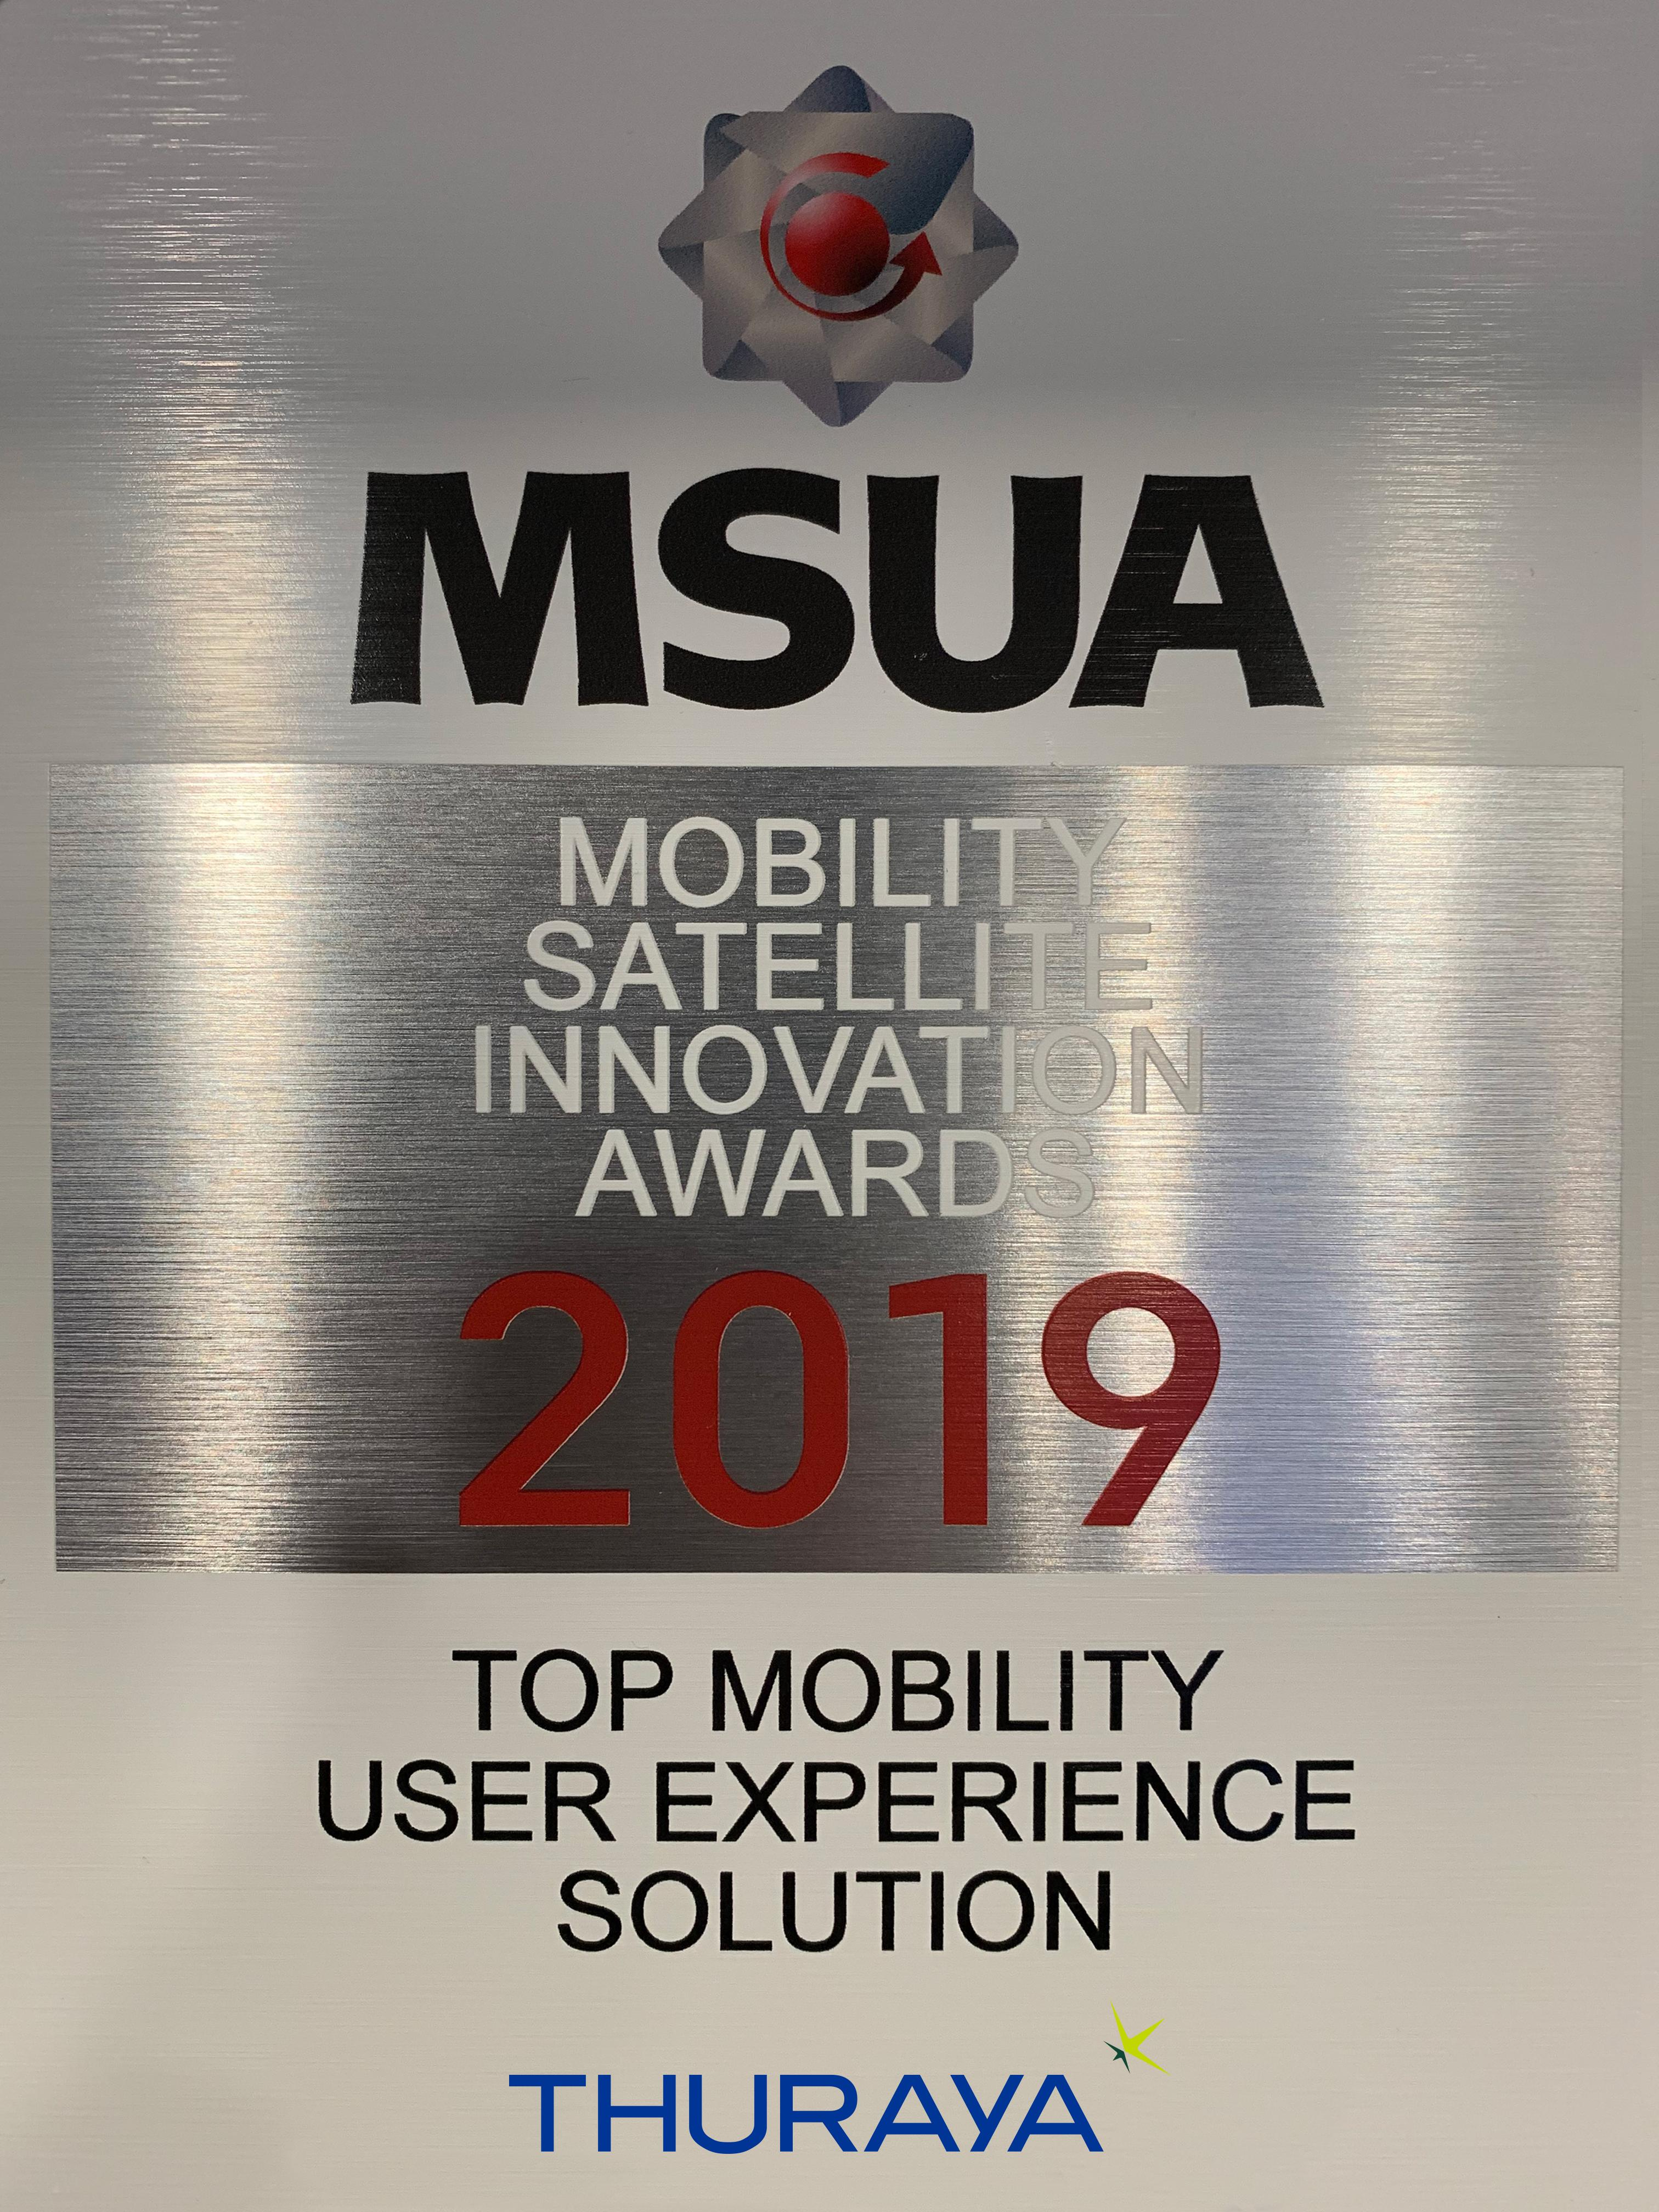 2 MSUA Award for Thuraya X5 Touch